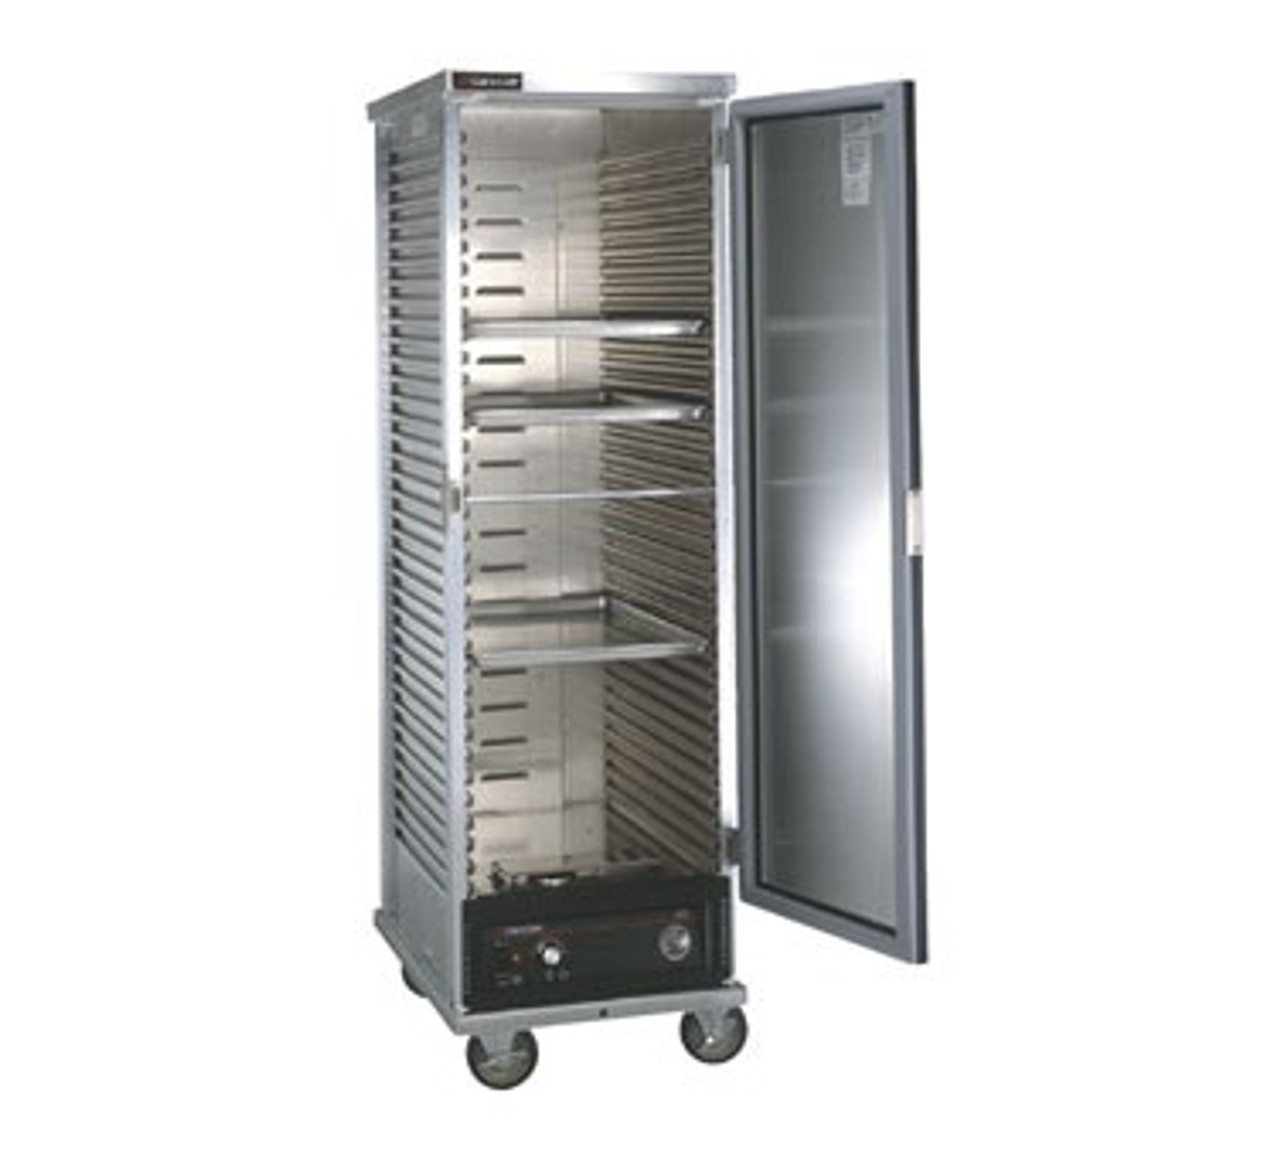 "Cabinet, Mobile Heated, non-insulated with bottom-mounted heater assembly, corrugated sides taking 18"" x 26"" pans, slides on 1-1/2"" centers, capacity (34) 18"" x 26"" pans, (4) 5"" casters (2) braked, aluminum exterior & interior, CSA, cCSAus"